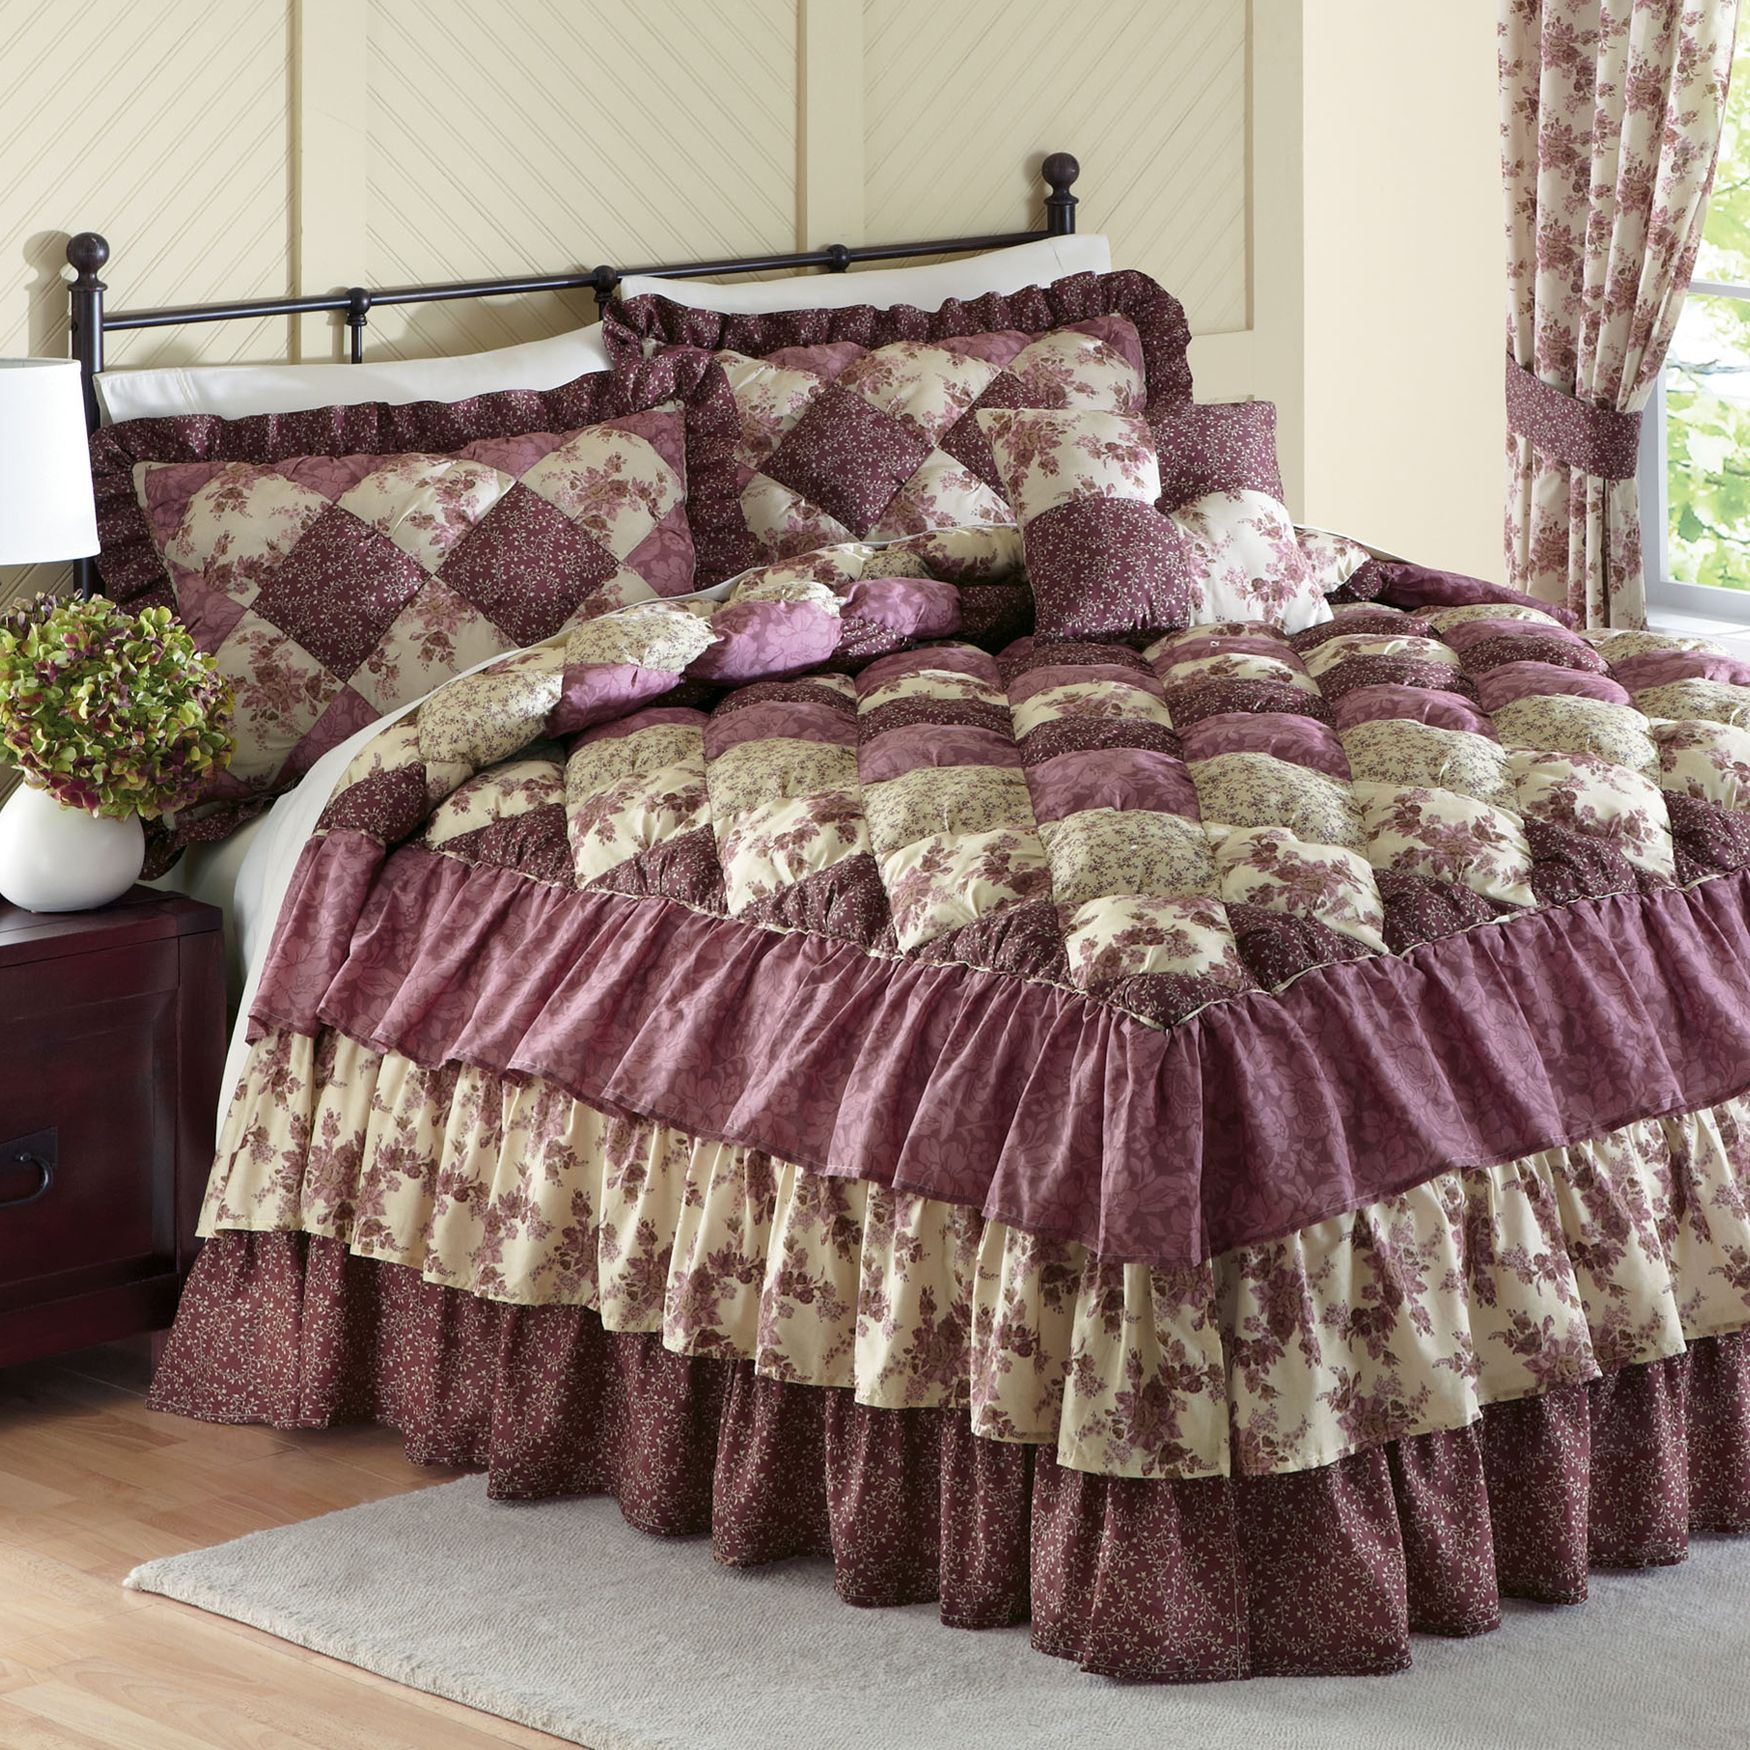 Alexis Puff Top Printed Bedspread More Bedroom Comforter Sets Bed Spreads Bedroom Decor